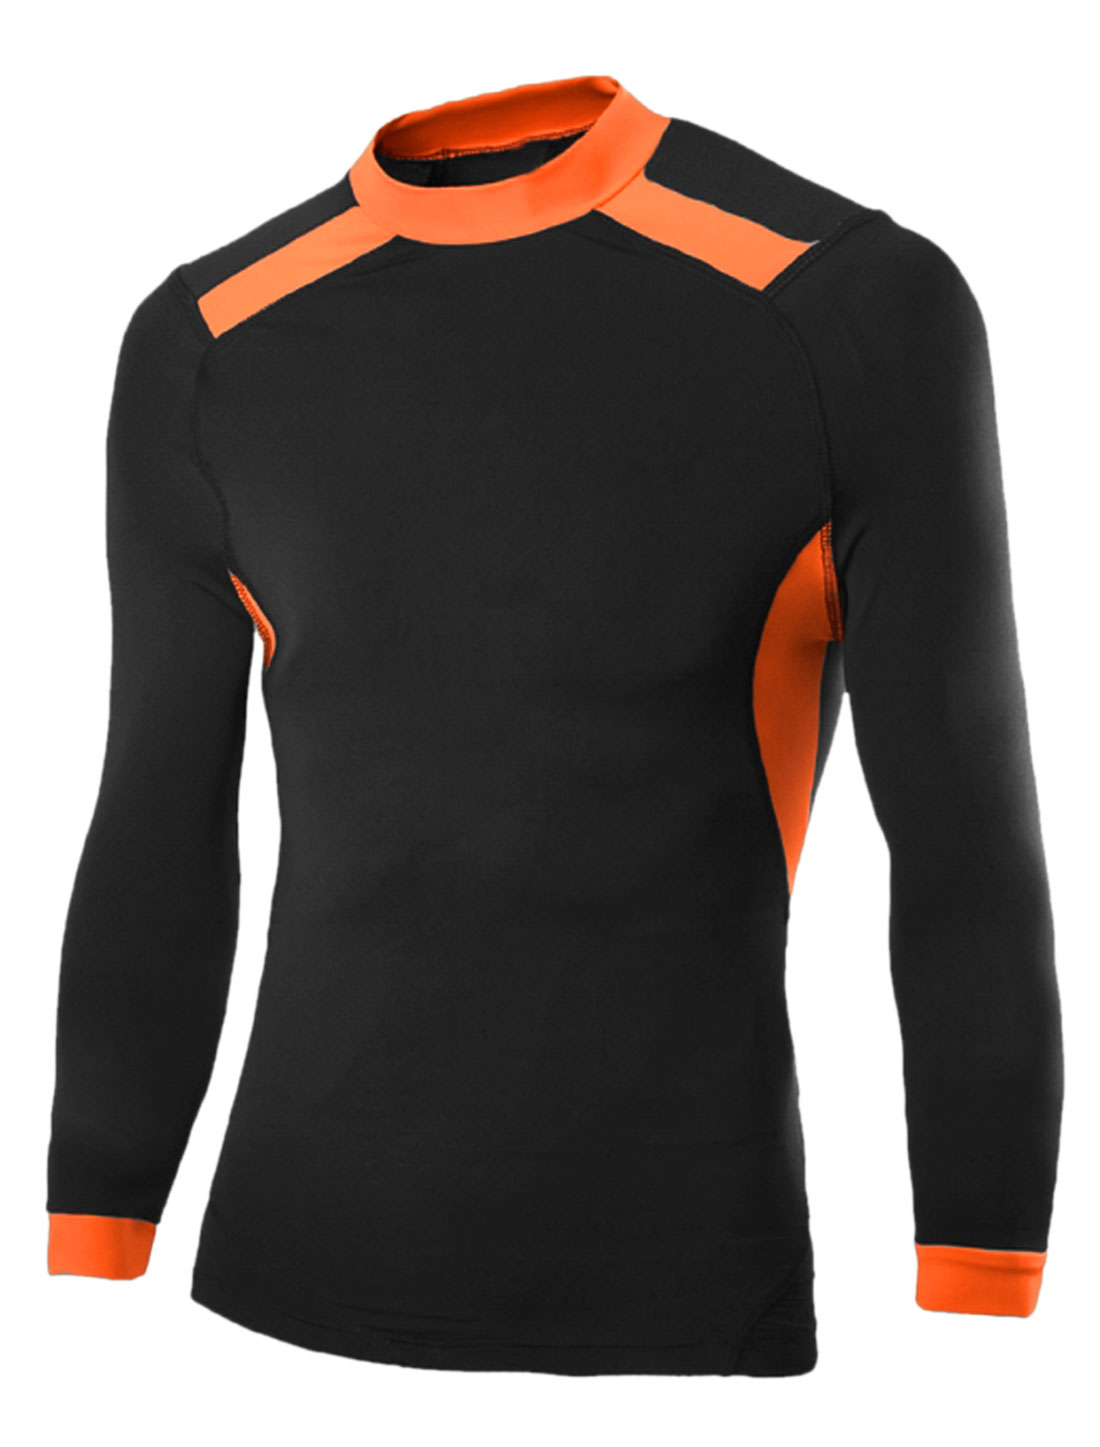 Men Contrast Color Stretchy Long Sleeves Sports T-Shirt Black M